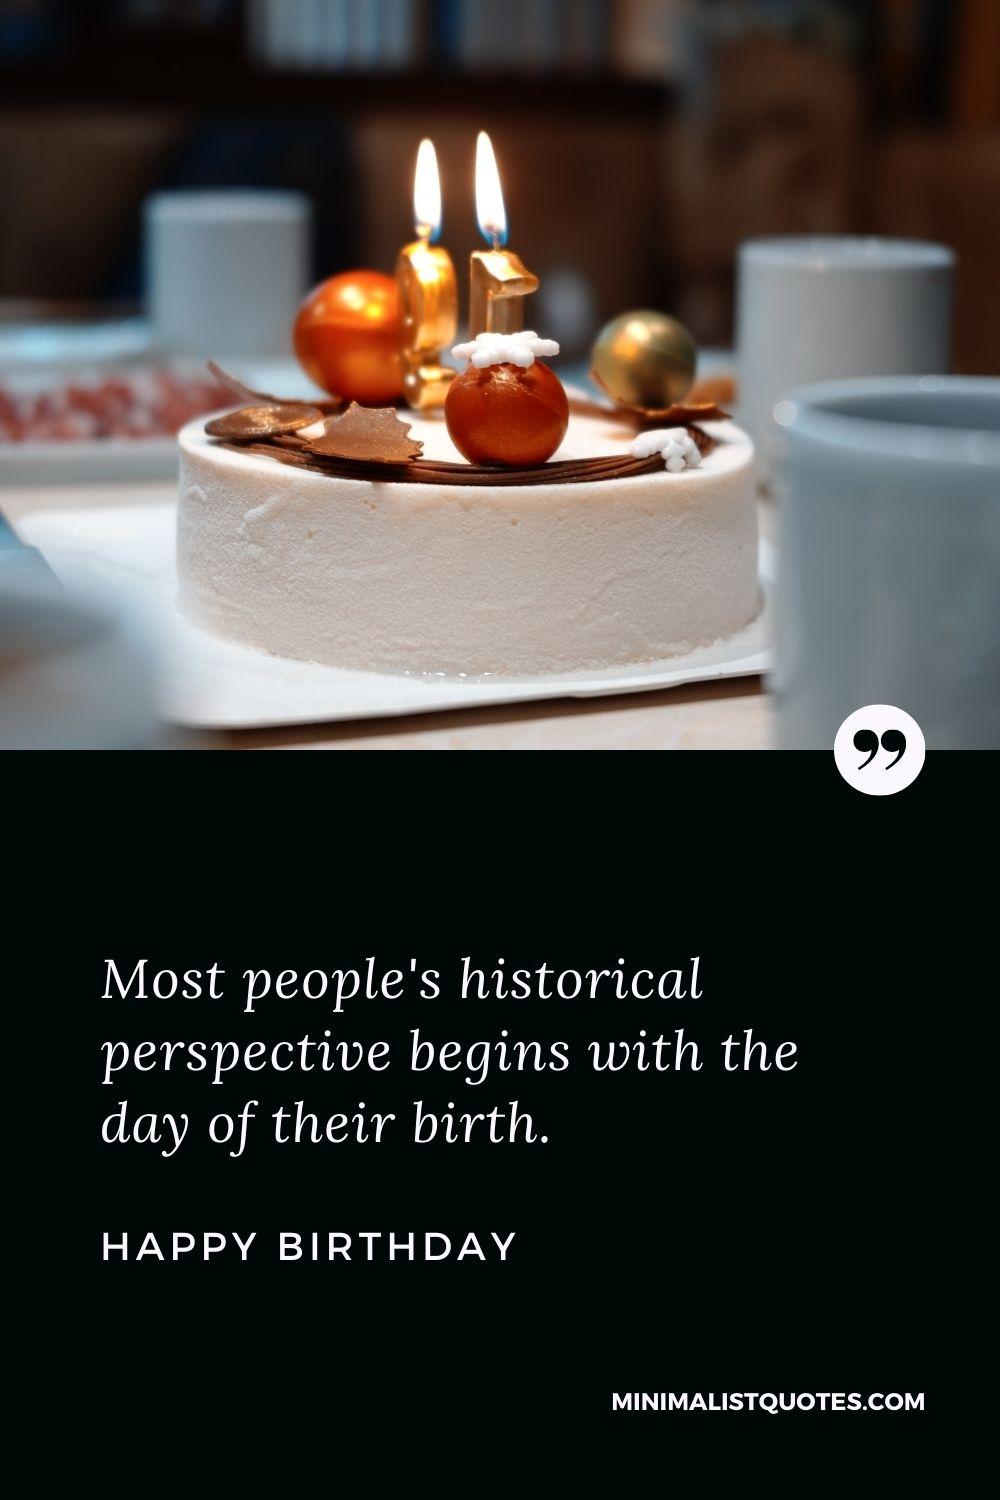 Birthday wish, message & quote: Most people's historical perspective begins with the day of their birth. Happy Birthday!